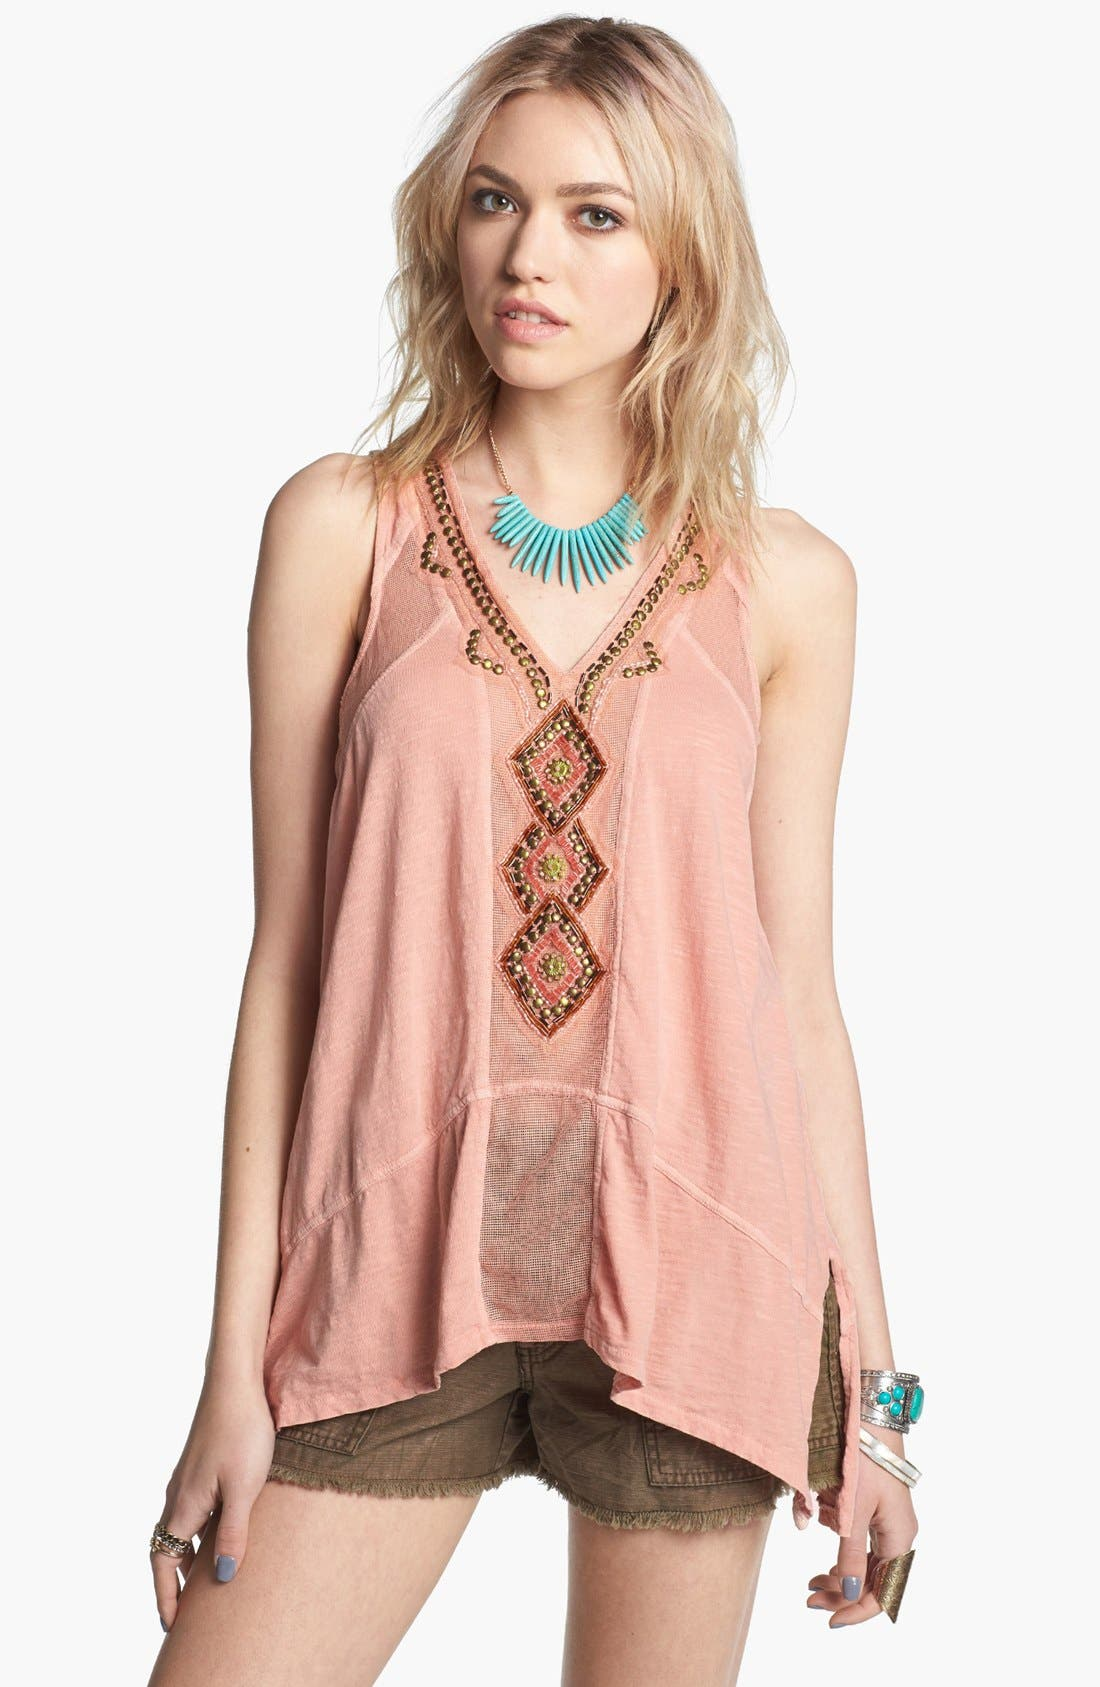 Main Image - Free People 'Focus on Center' Embellished Tank